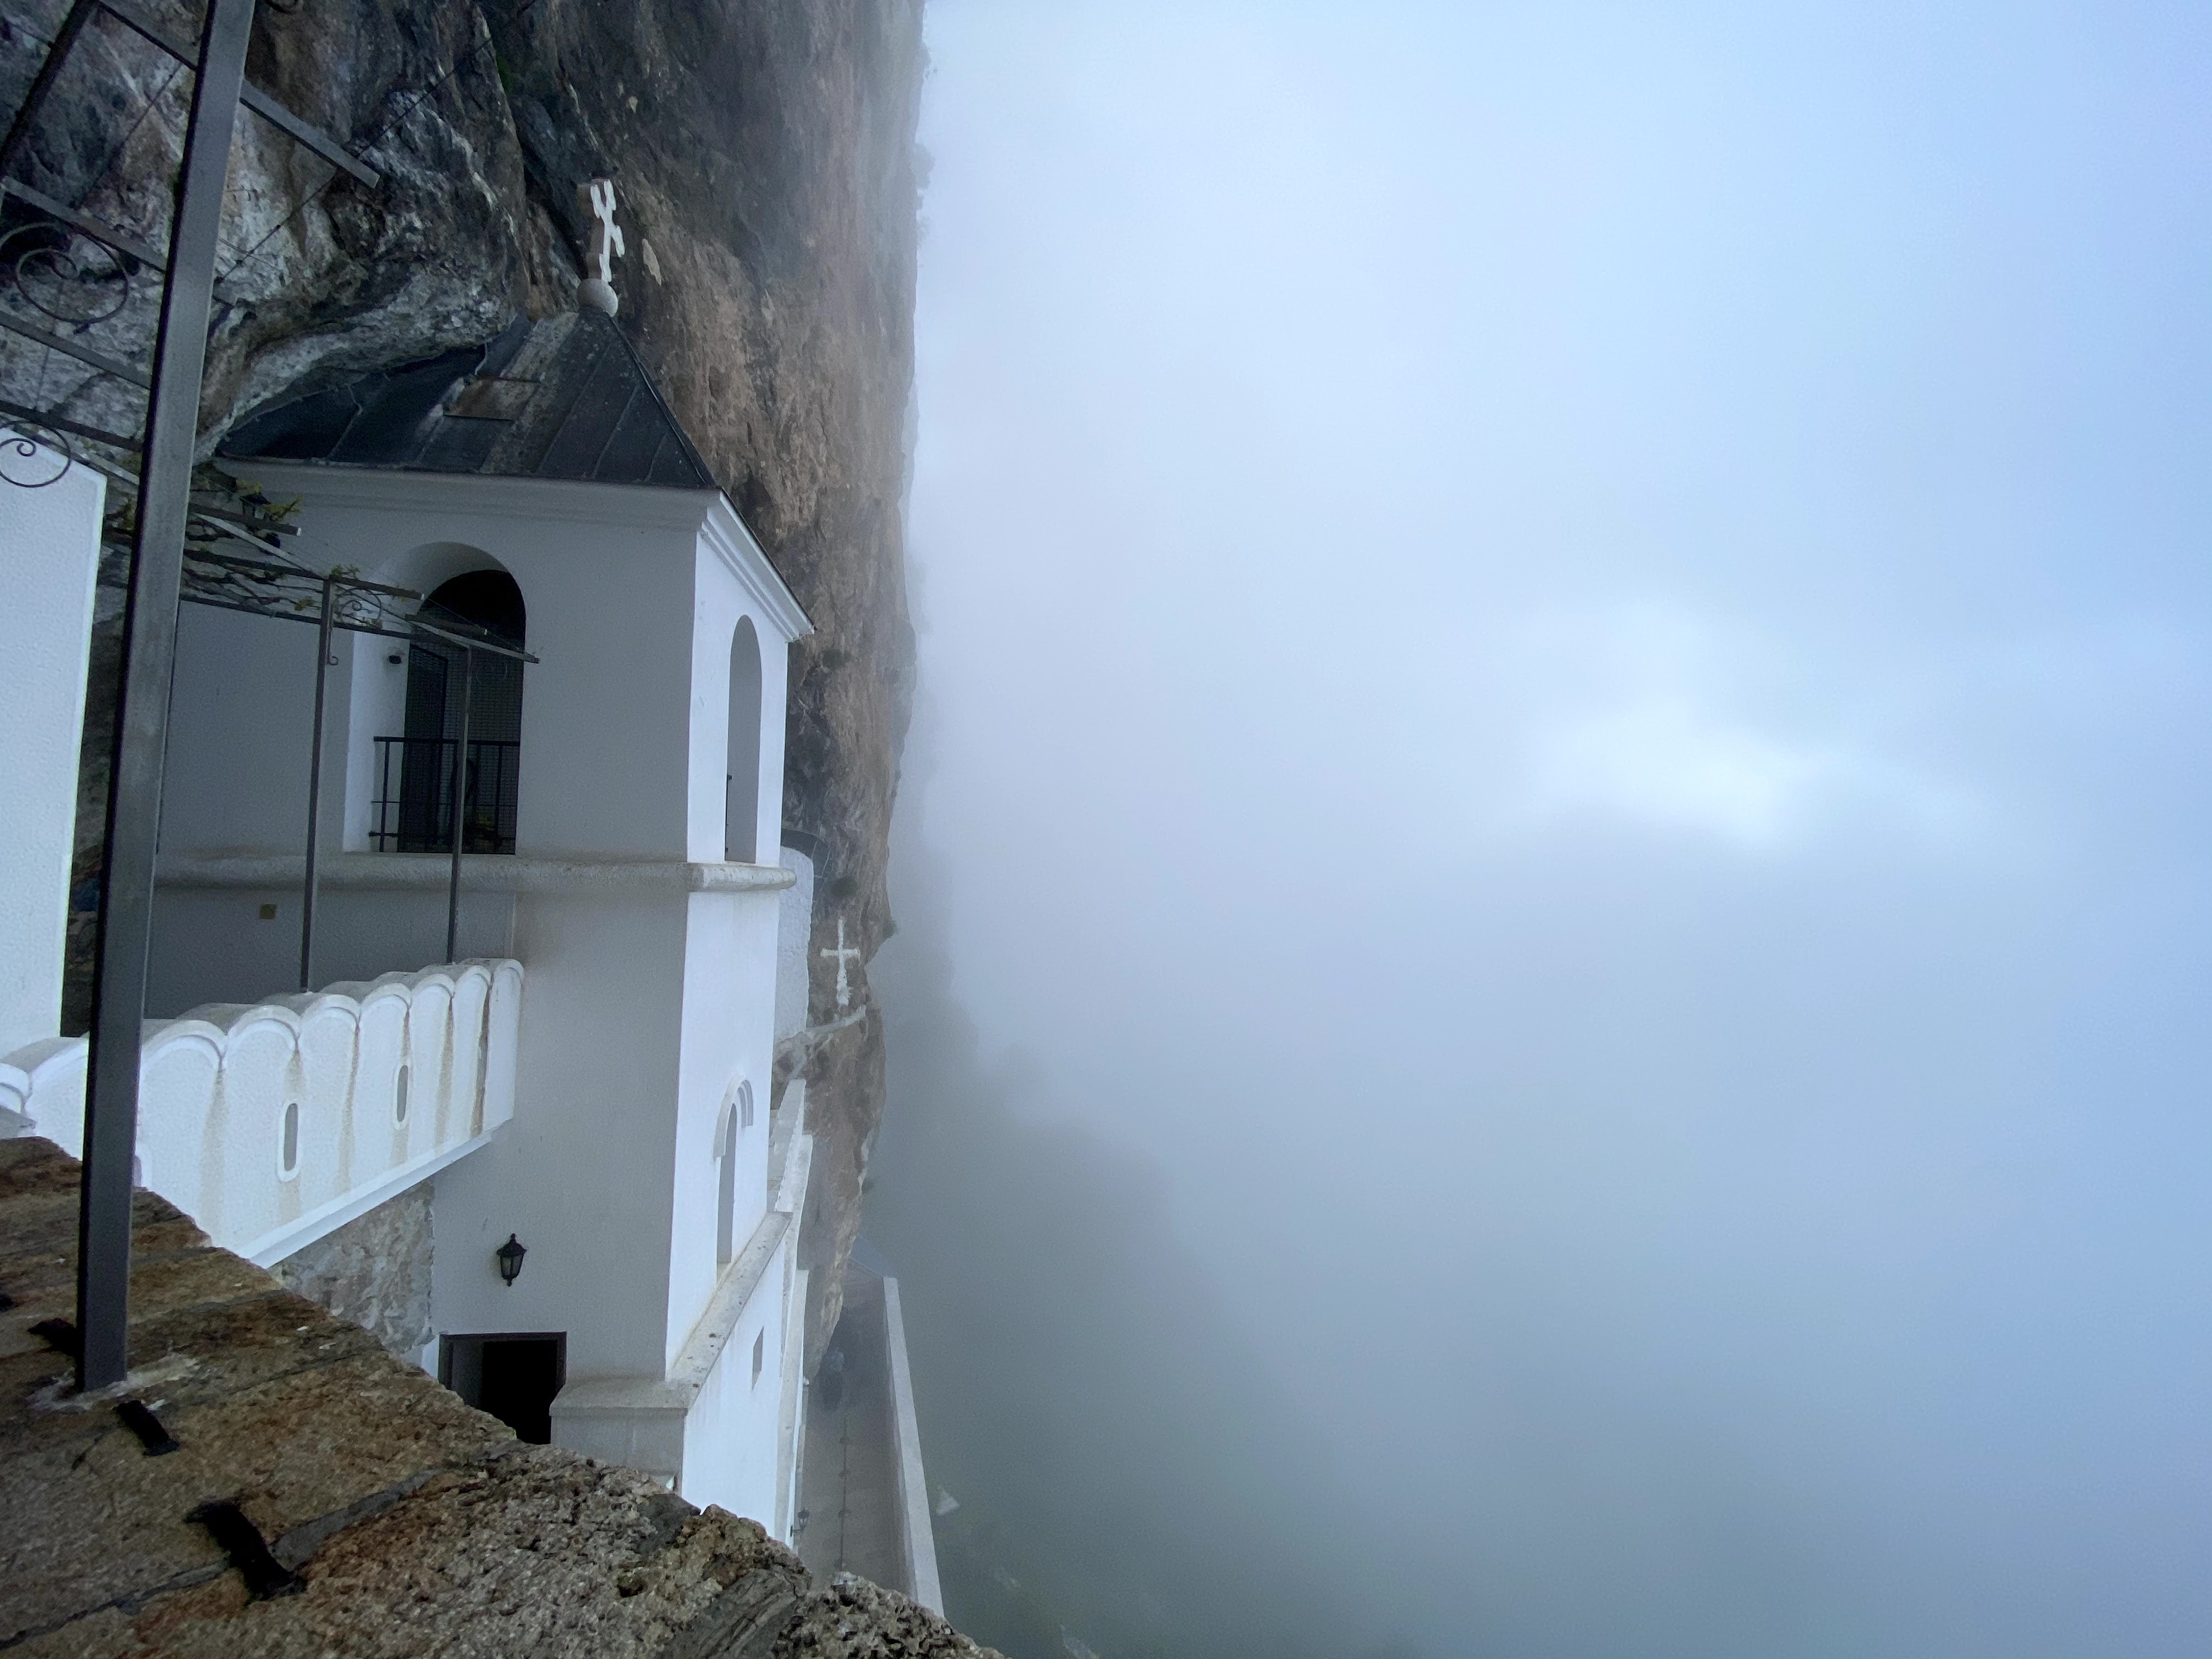 White Church of Ostrog Monastery set into a steep cliff face. Dramatically there is fog covering the view.